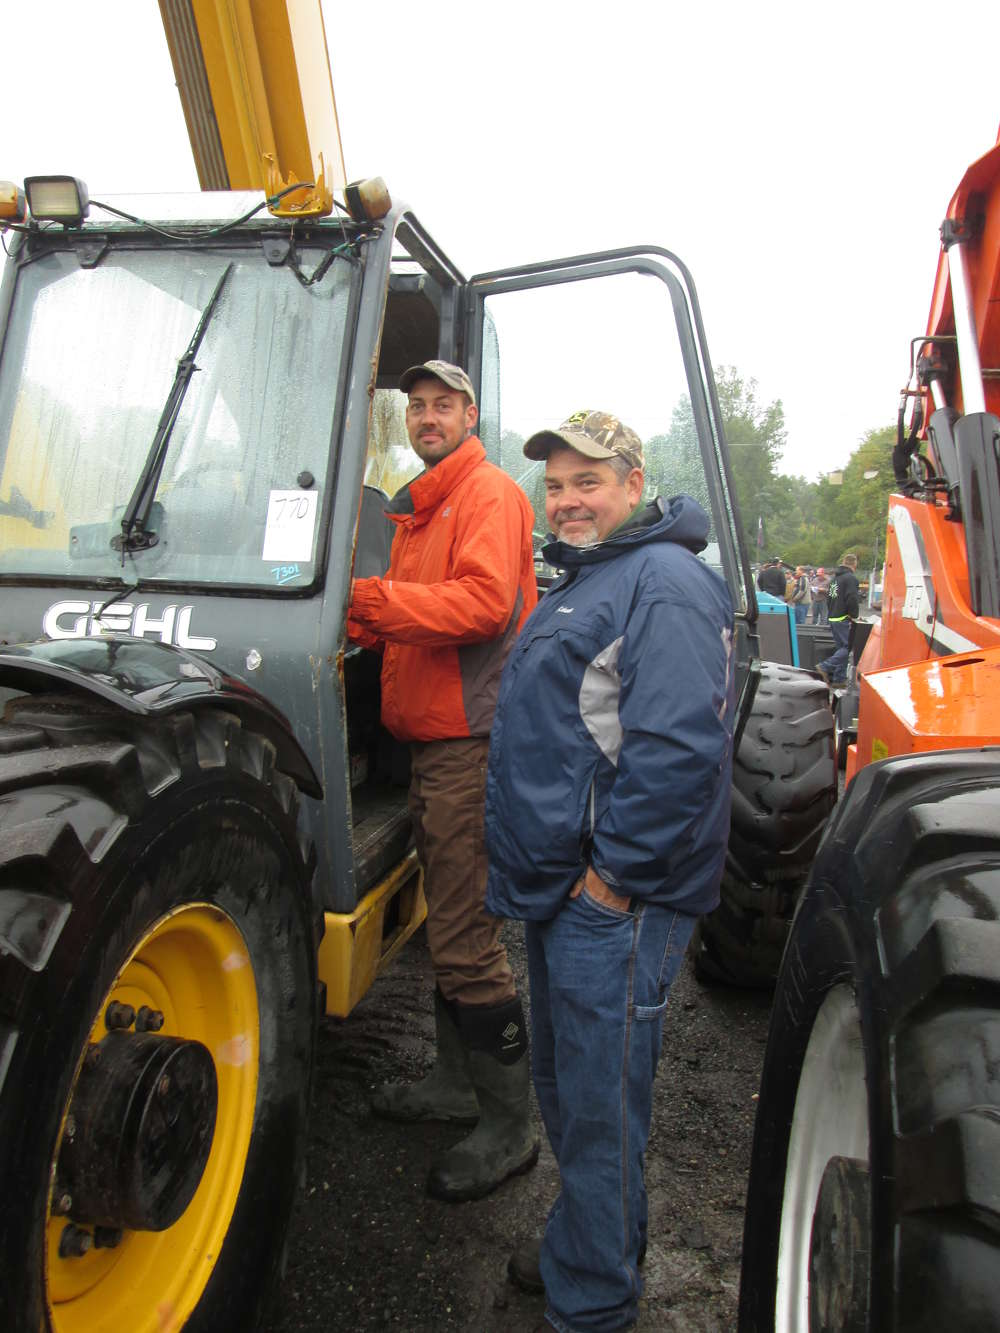 Steve Carroll (R) and his cousin, Marc Astrella, of Carroll Custom Contracting, West Brookfield, Mass., check out a Gehl telehandler/boom truck.